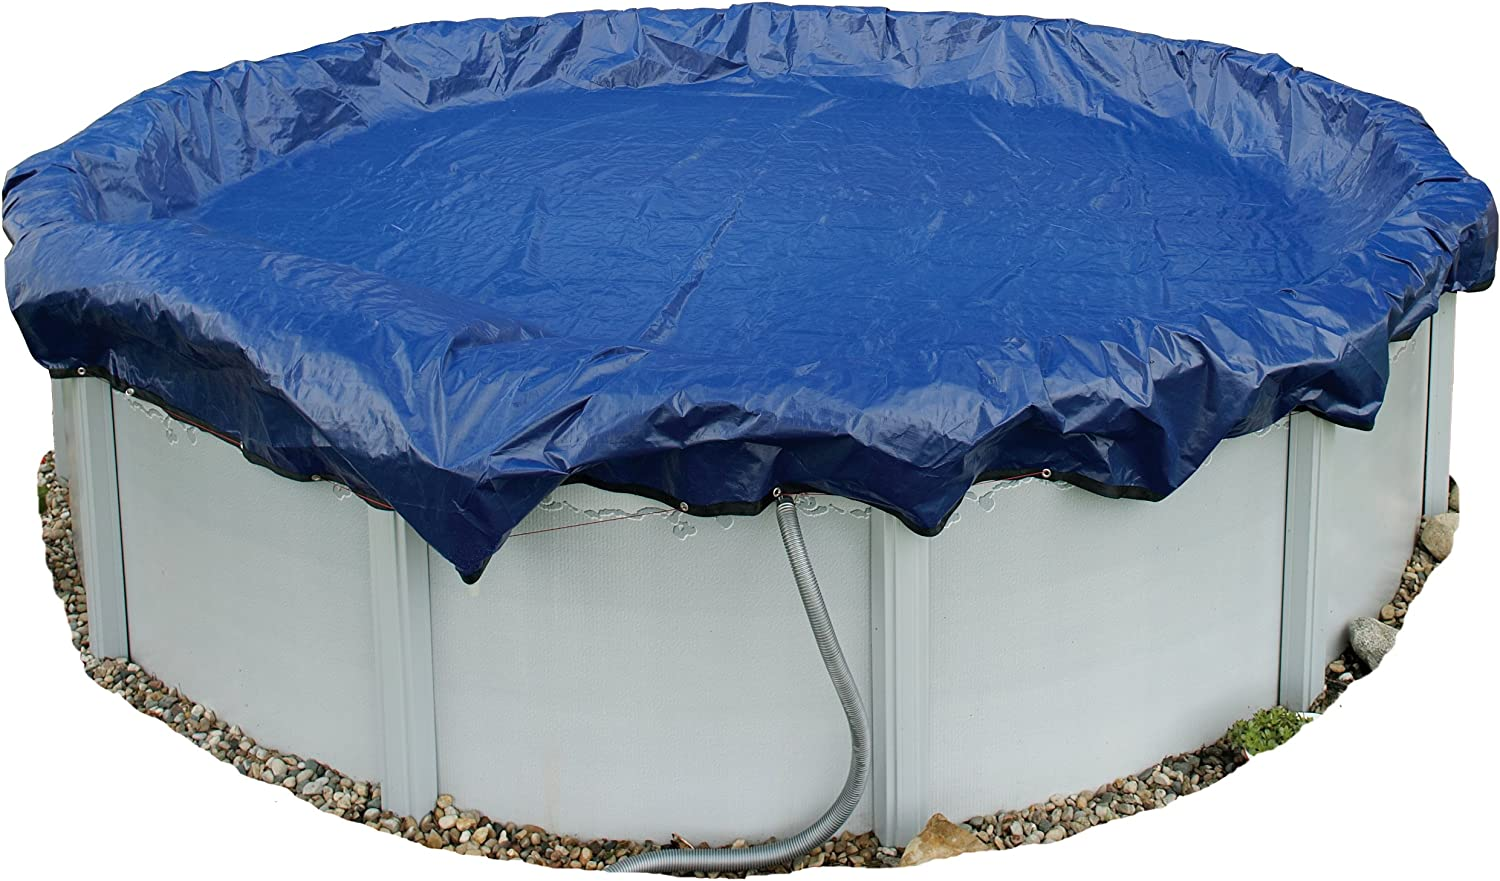 Blue Wave BWC908Gold 15-Year 24-ft Round Above Ground Pool Winter Cover,Royal Blue